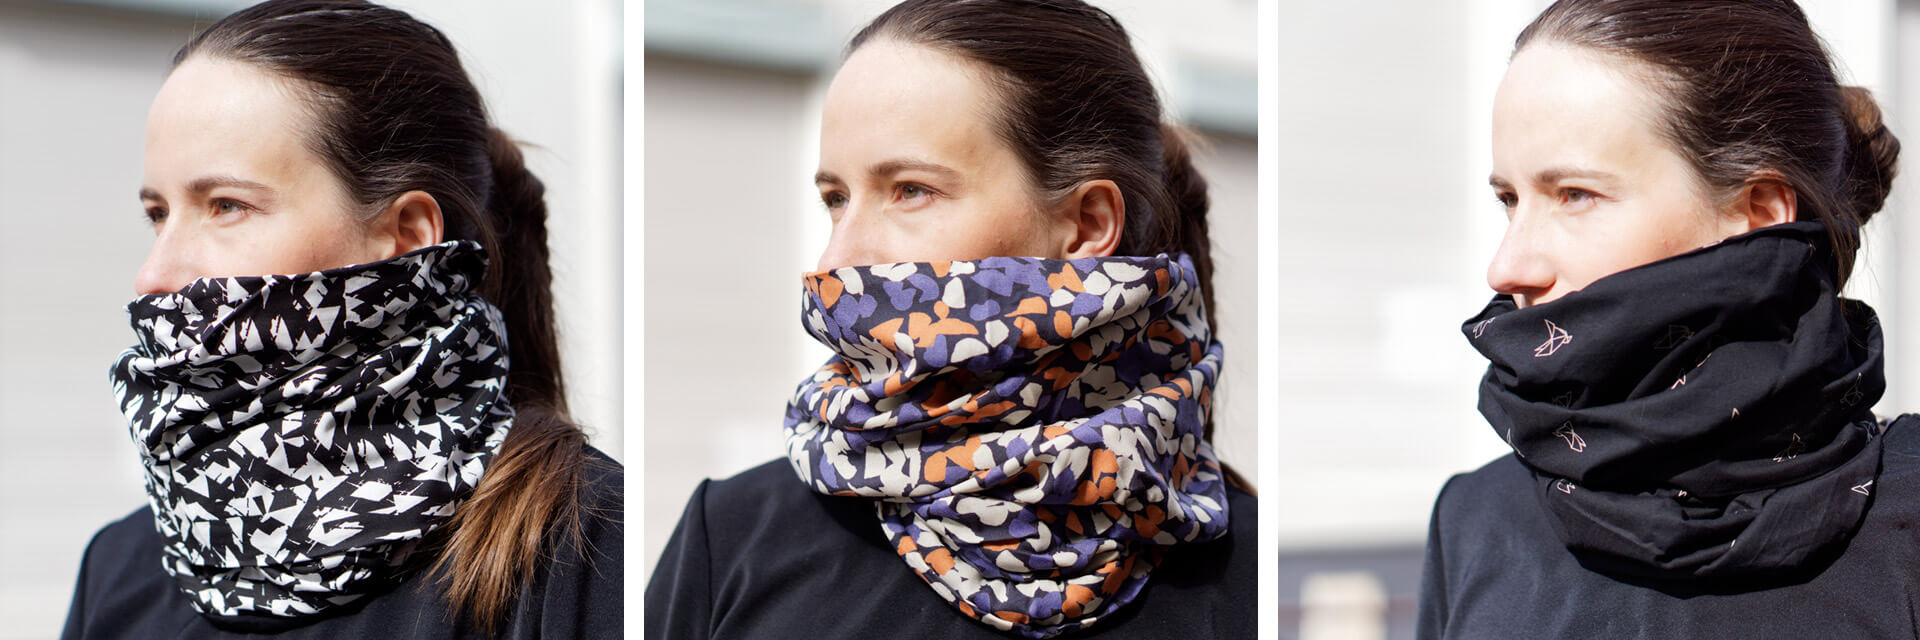 patterns and colors of the snood scarf for ladies Lady Harberton